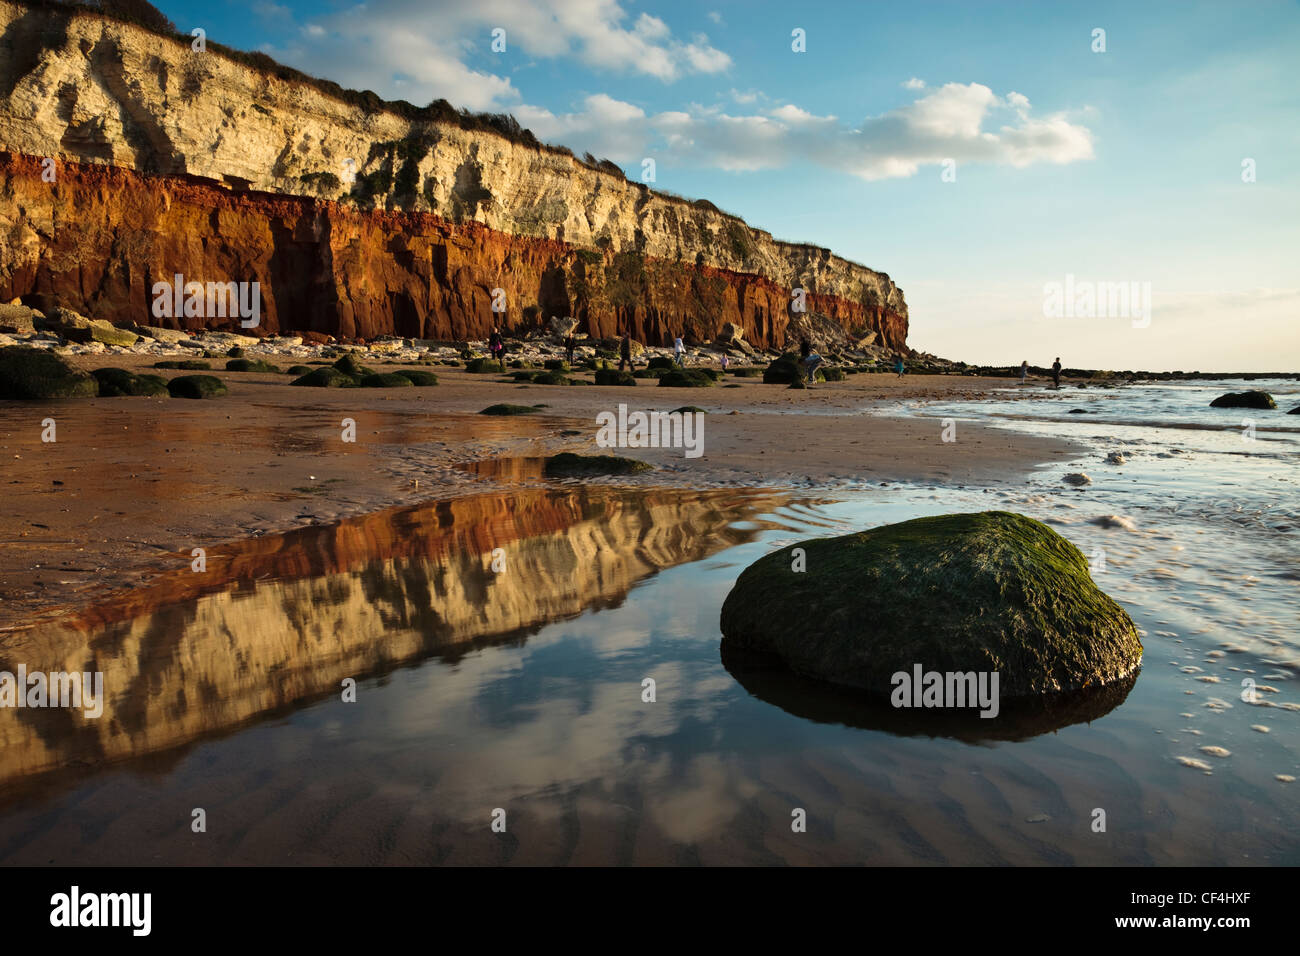 The two tone cliffs at Hunstanton reflected in a pool of water on the beach. - Stock Image